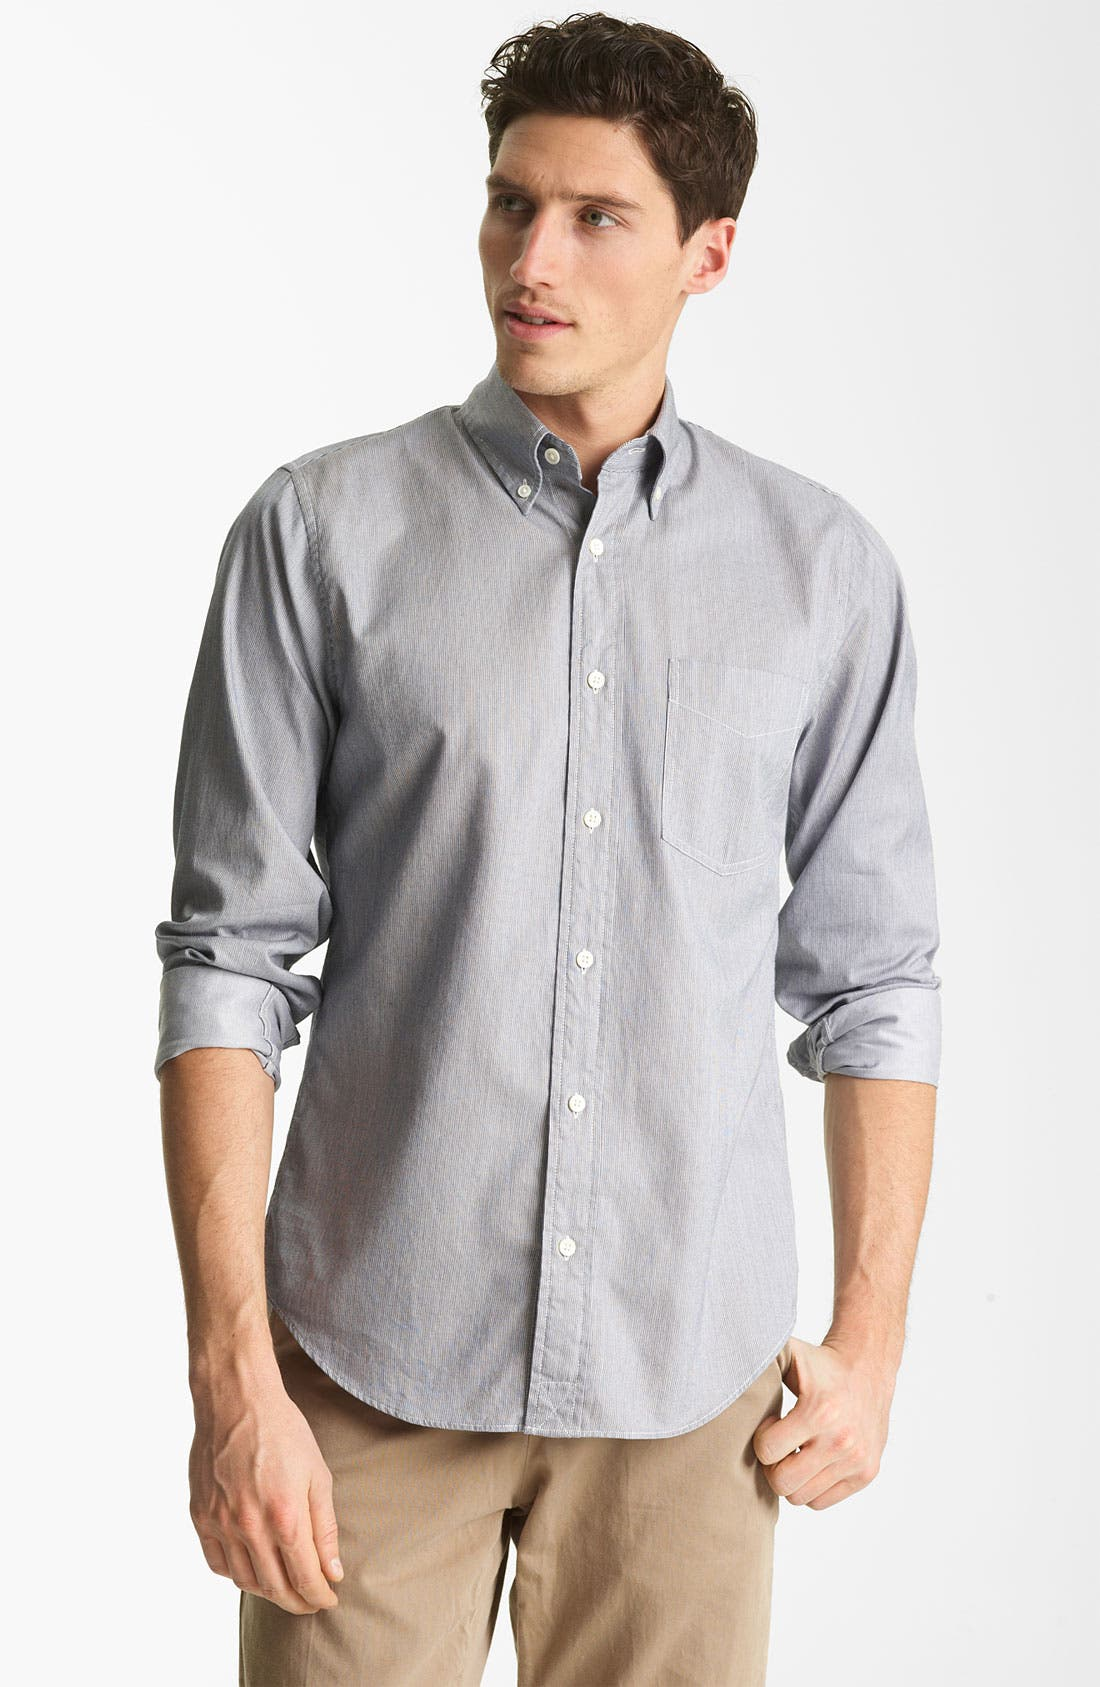 Alternate Image 1 Selected - Jack Spade 'Mills' Stripe Sport Shirt